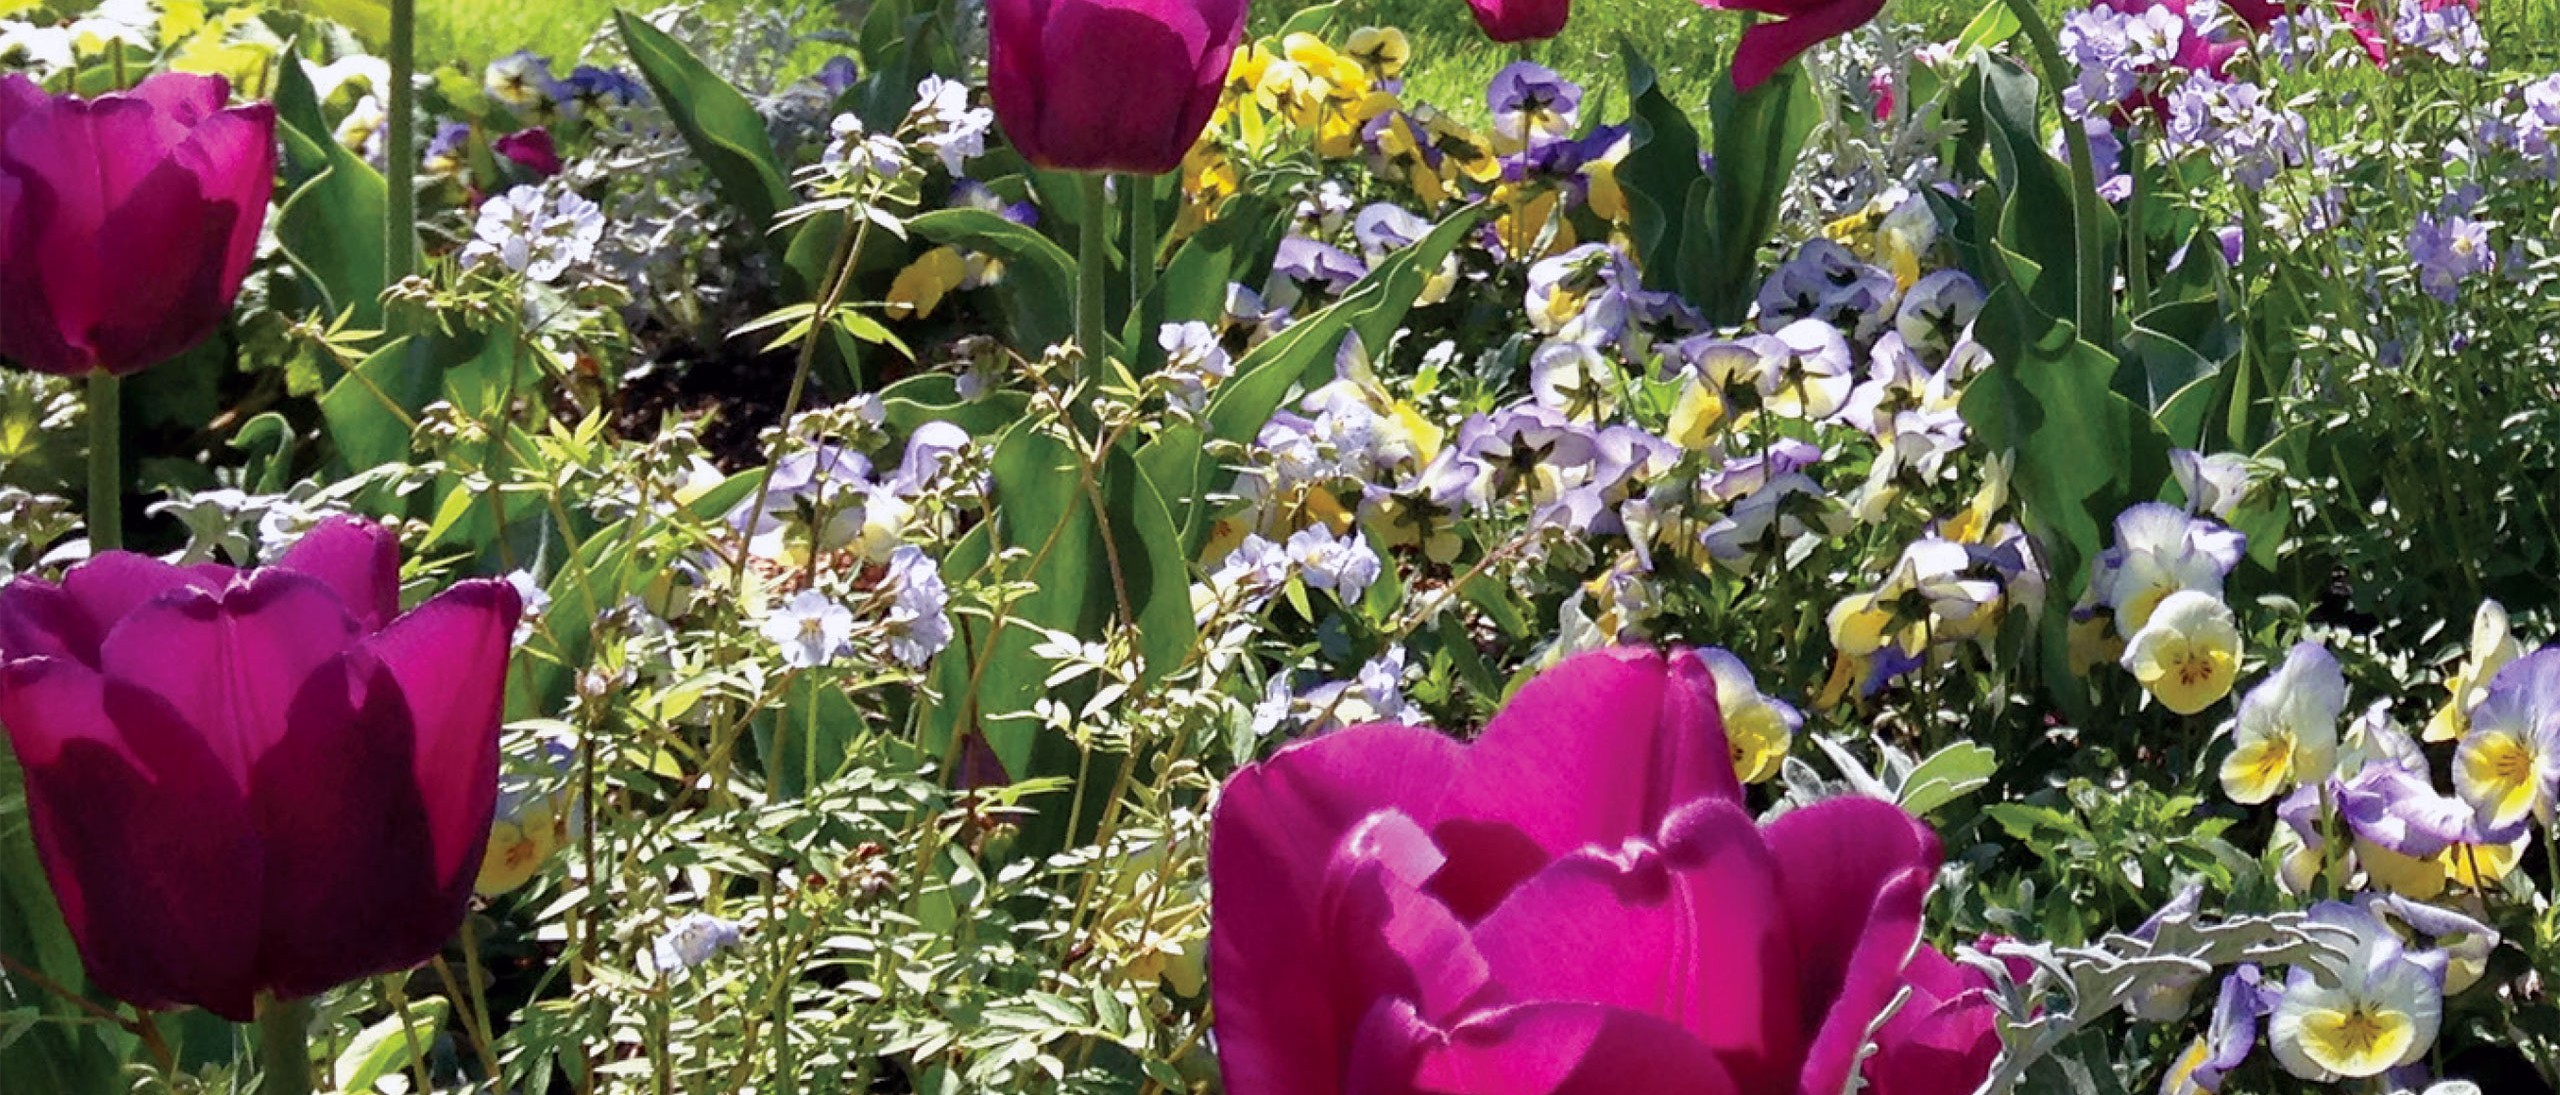 Smithsonian Gardens with tulips and pansies in bloom